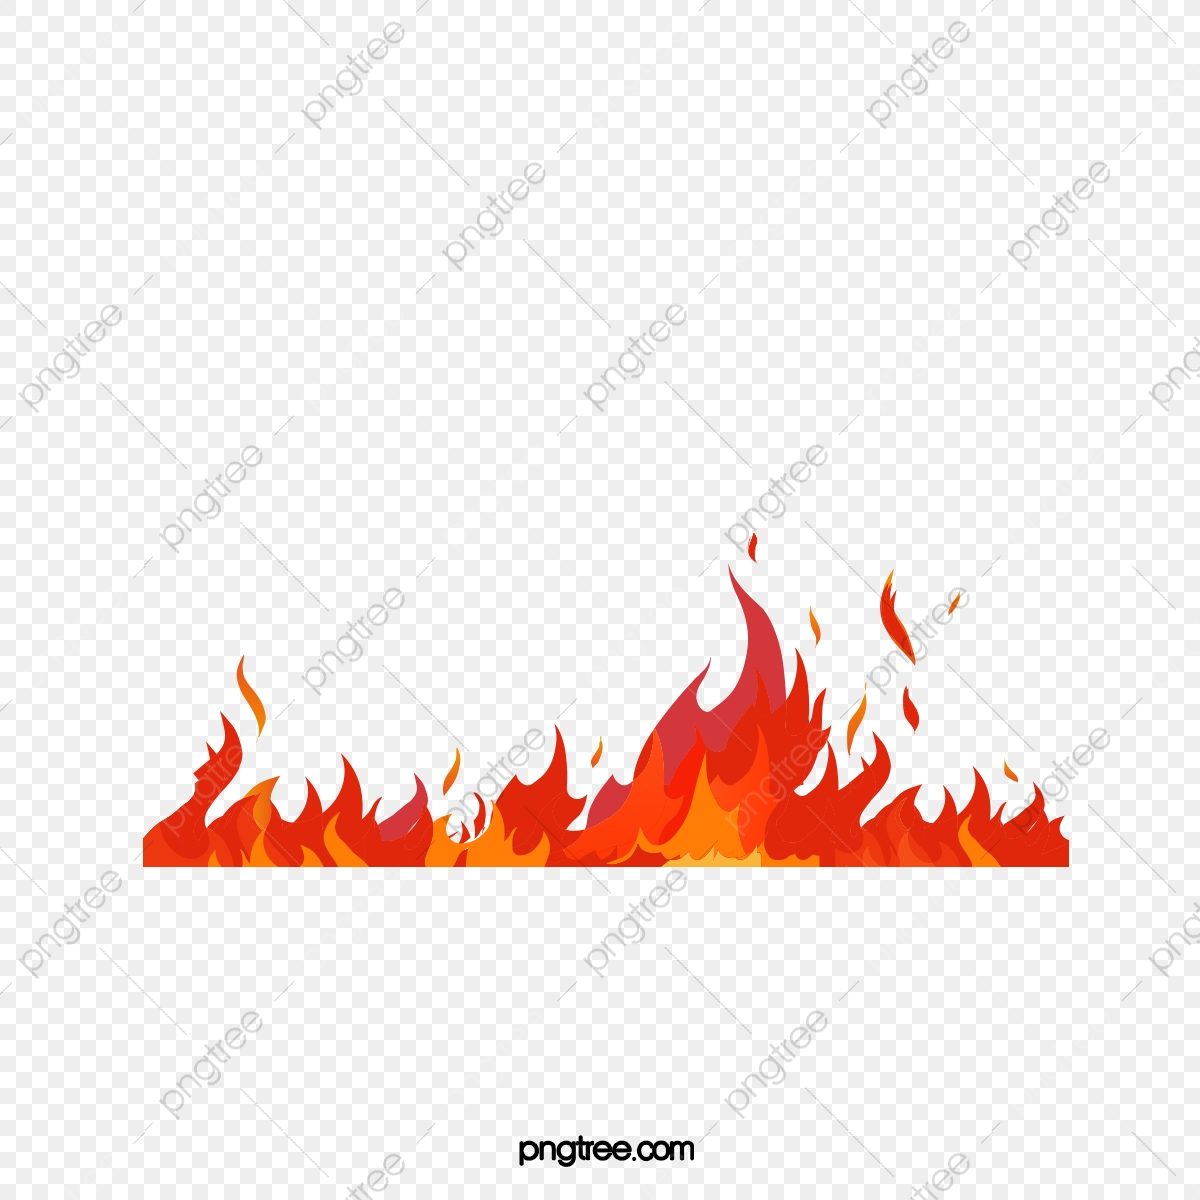 Fire PNG Images, Download 20+ Fire PNG Resources with ...